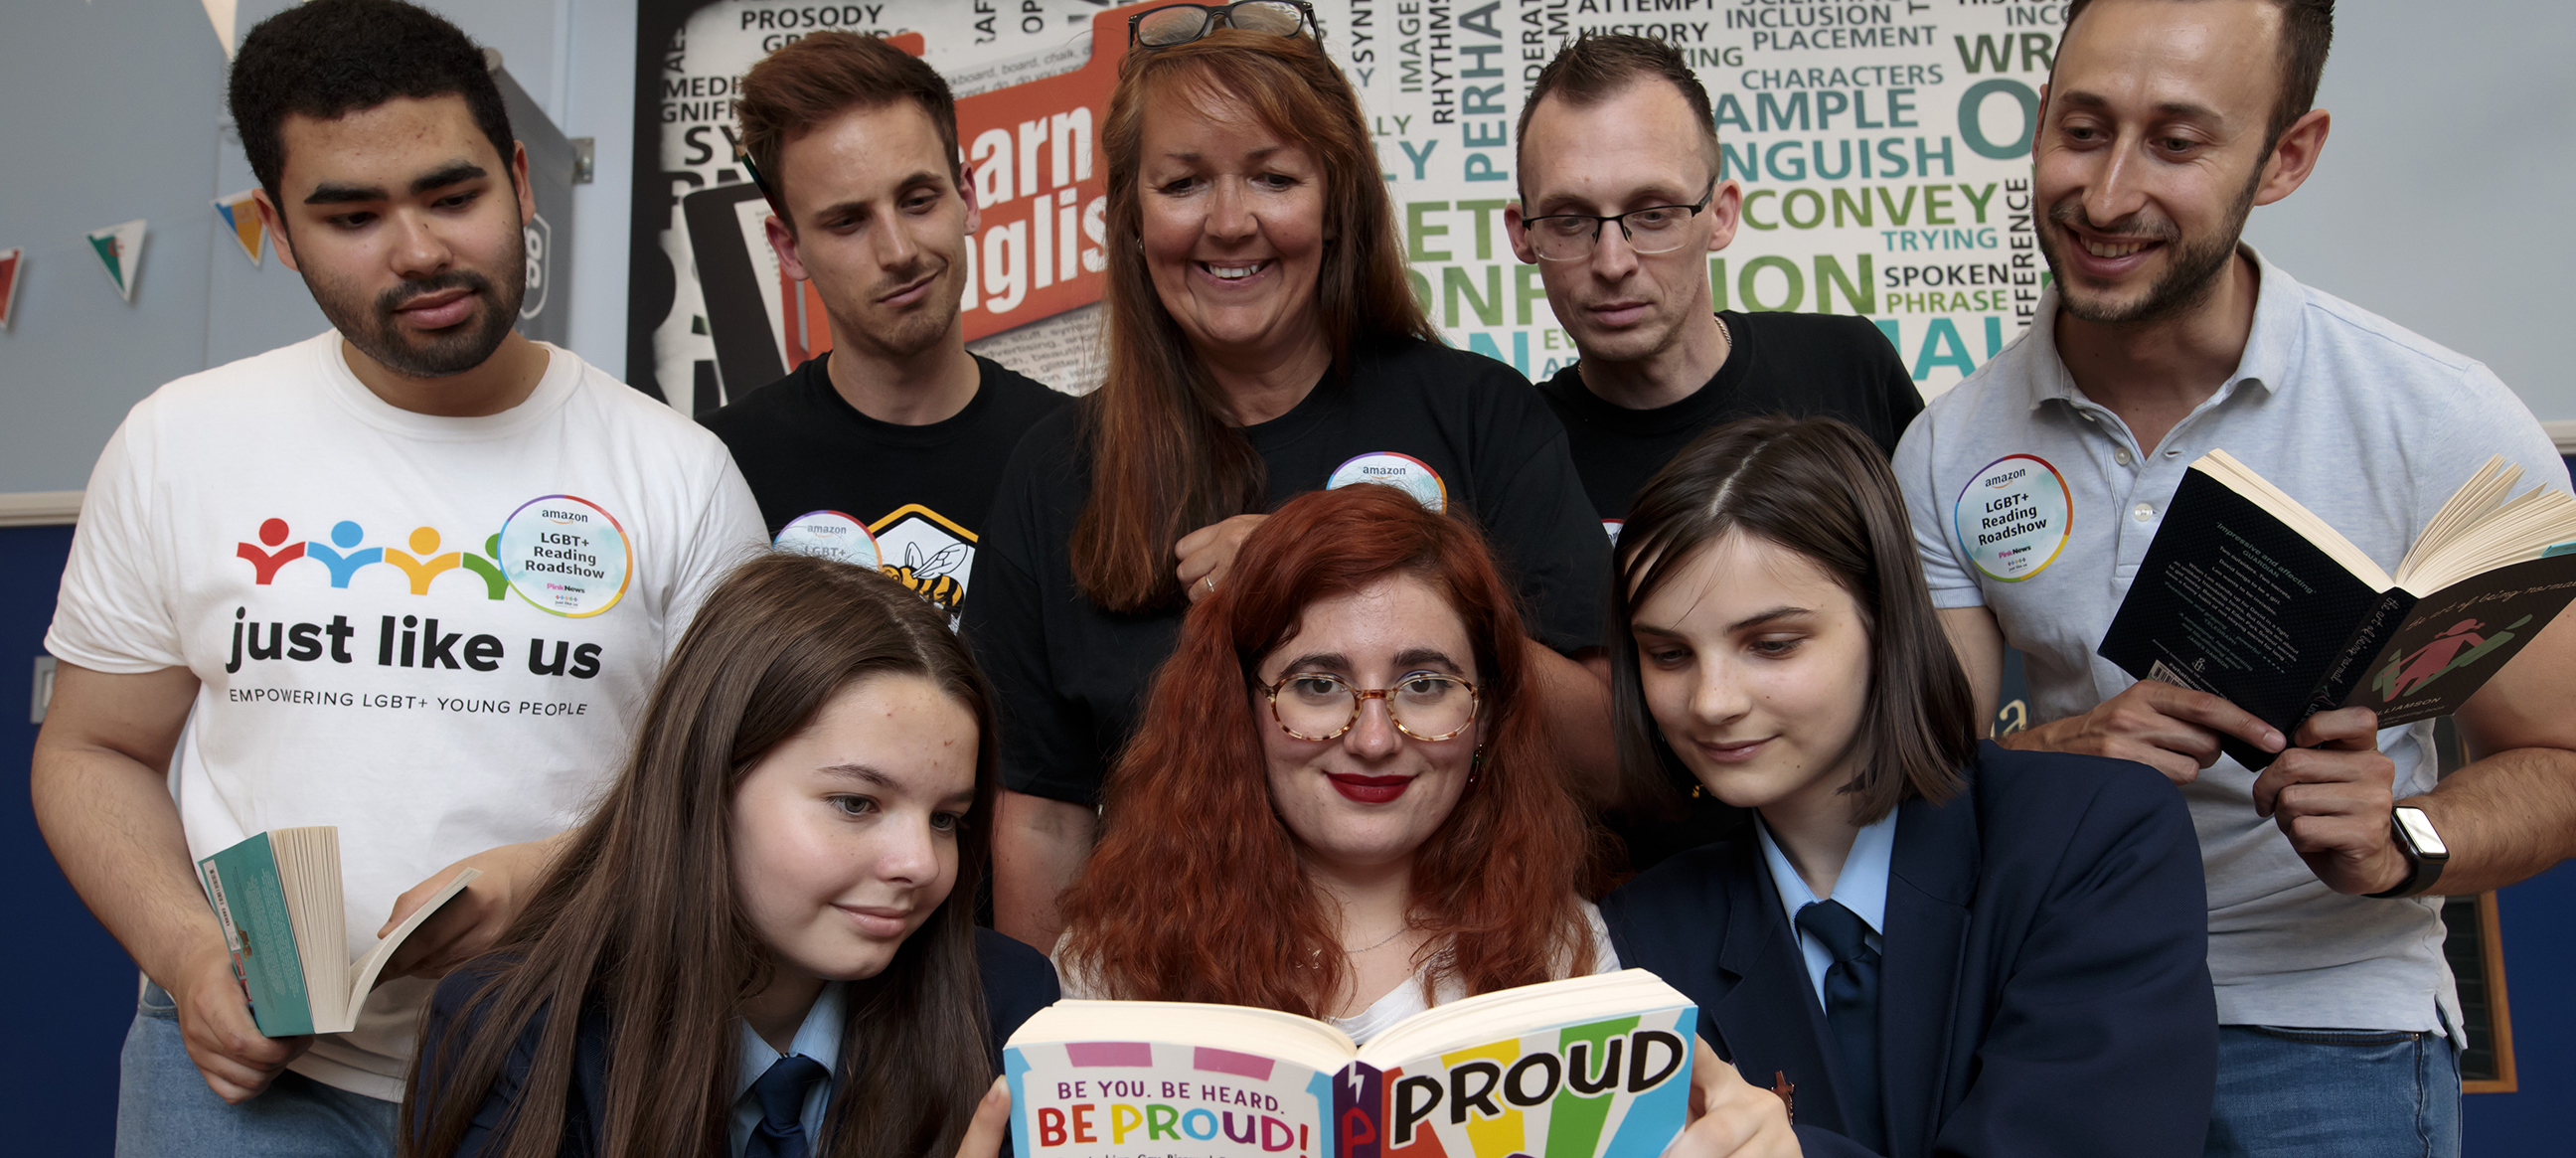 Amazon LGBT+ Reading Roadshow